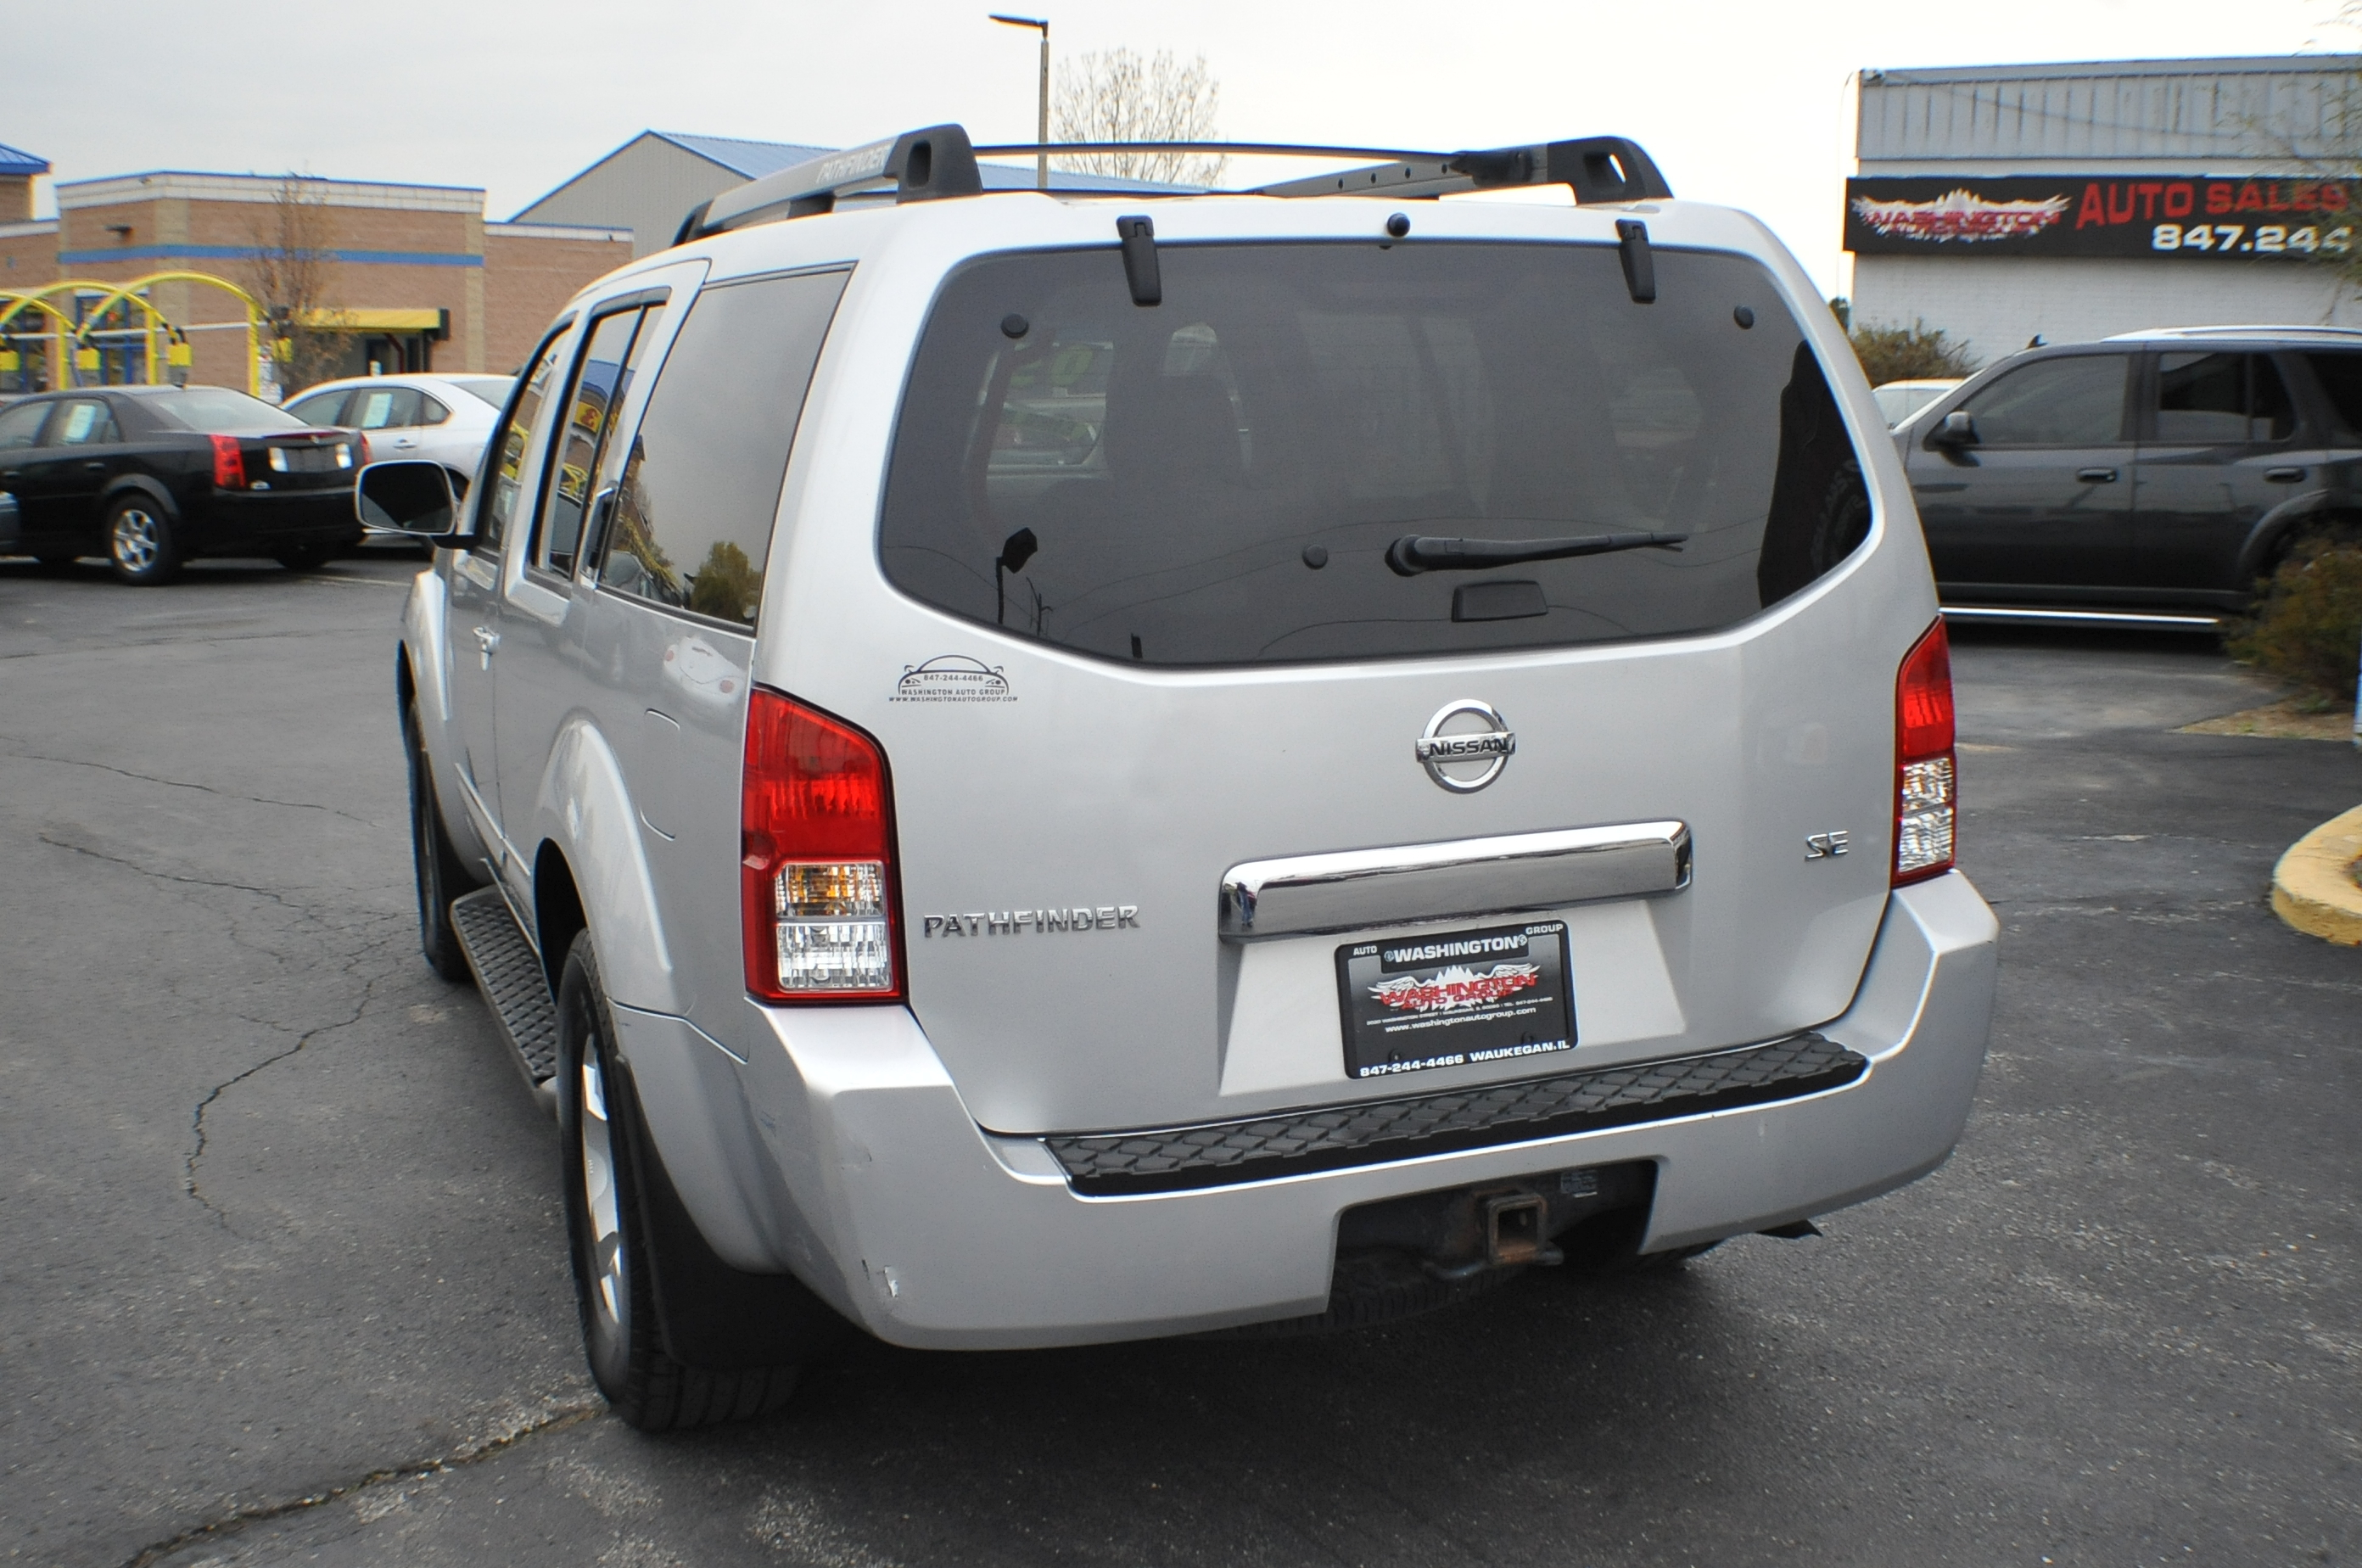 2005 Nissan Pathfinder SE Silver Used SUV 4x4 Sale Buffalo Grove Deerfield Fox Lake